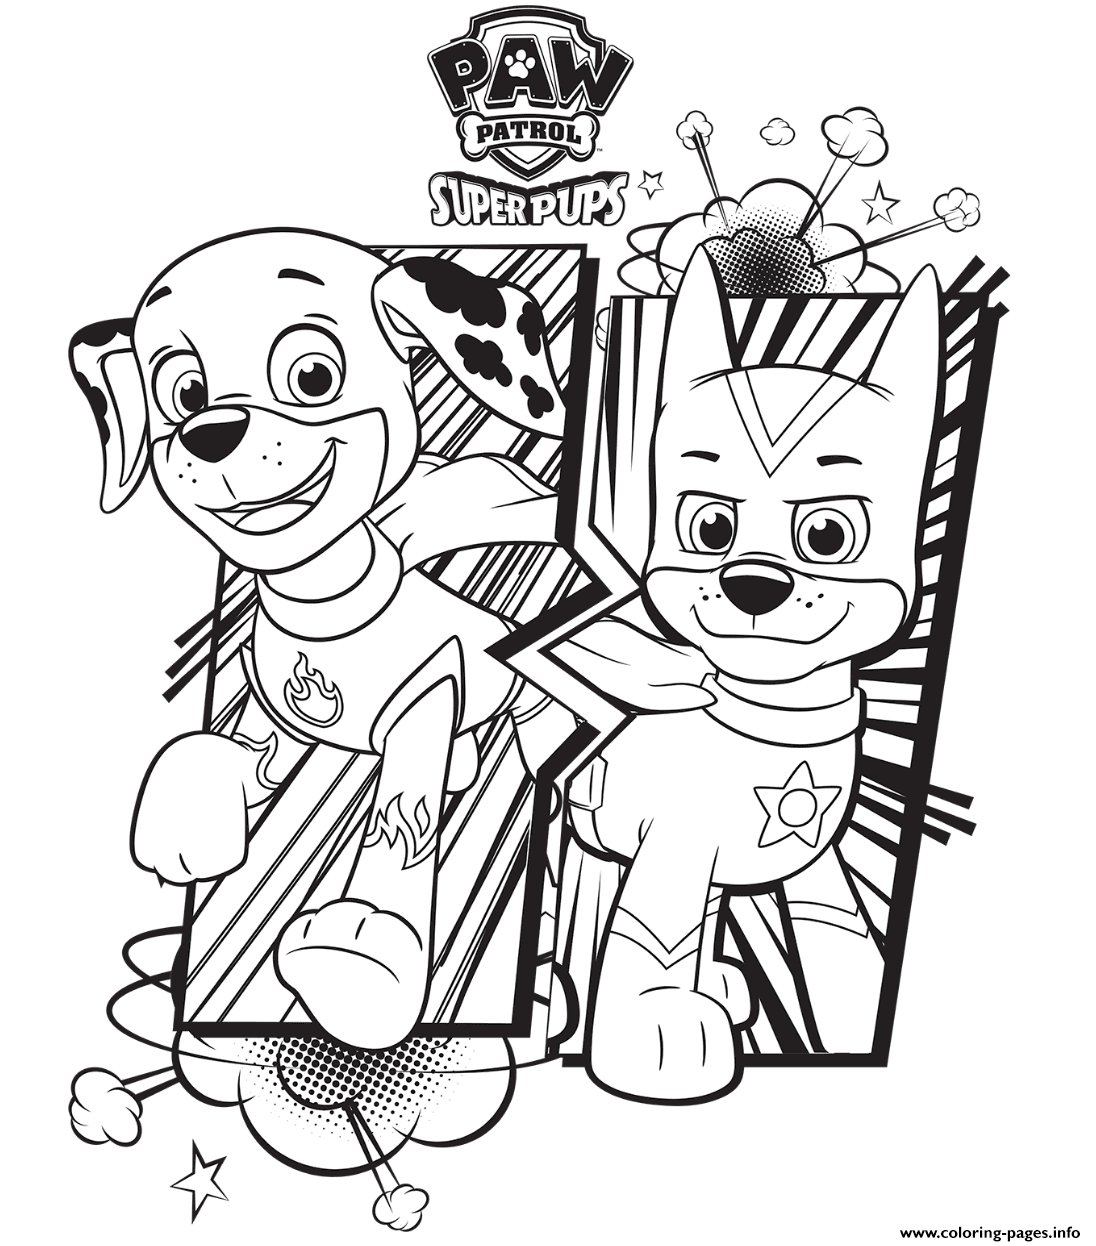 - Paw Patrol Super Pups Coloring Pages Printable